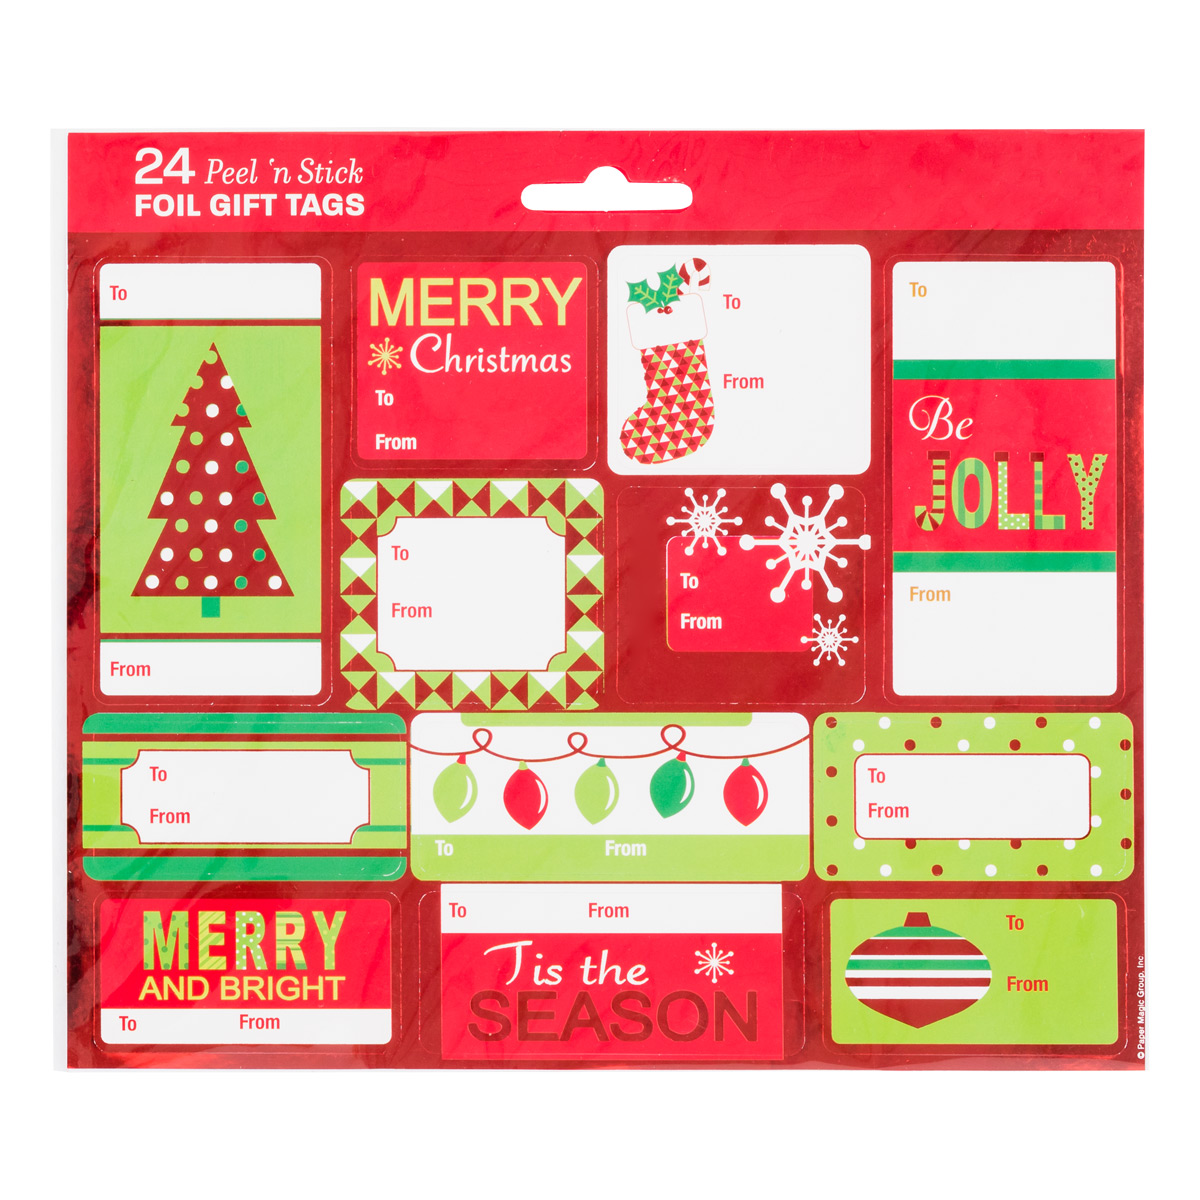 Merry & Bright Foil Gift Labels